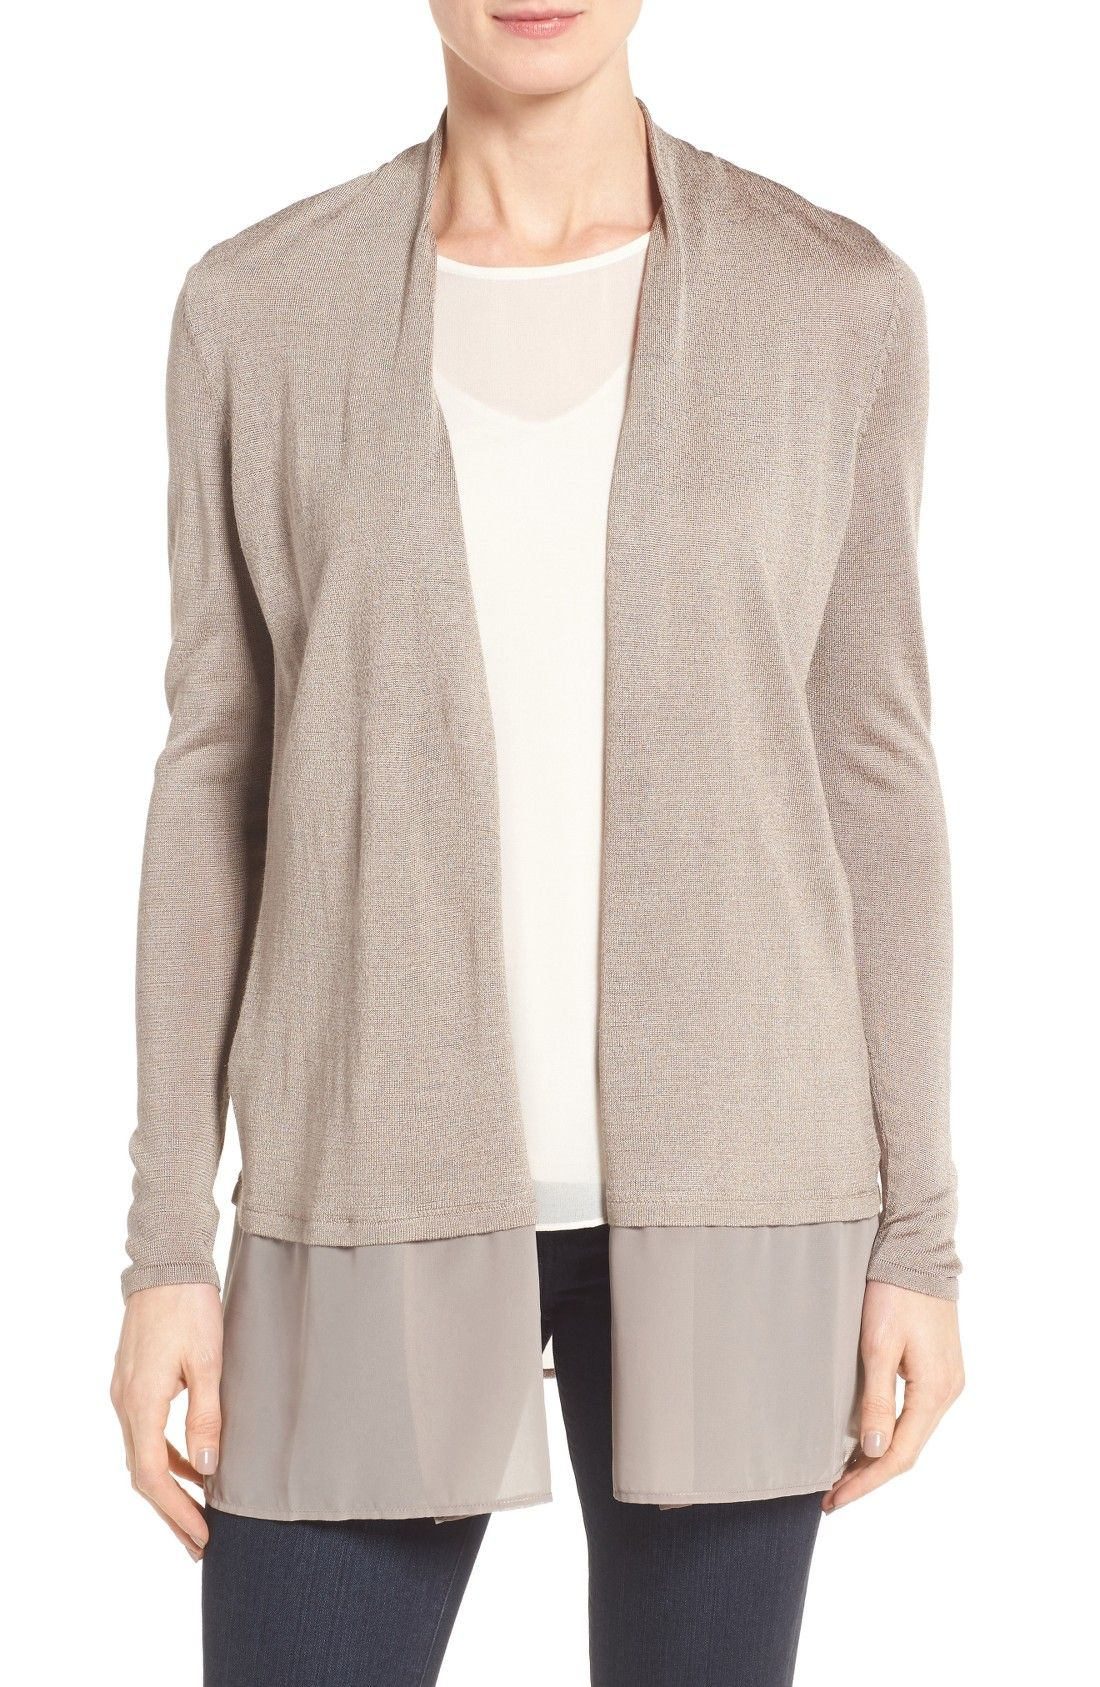 NIC ZOE Chiffon Trim Cardigan Online Cheap | Women's Work Clothing ...